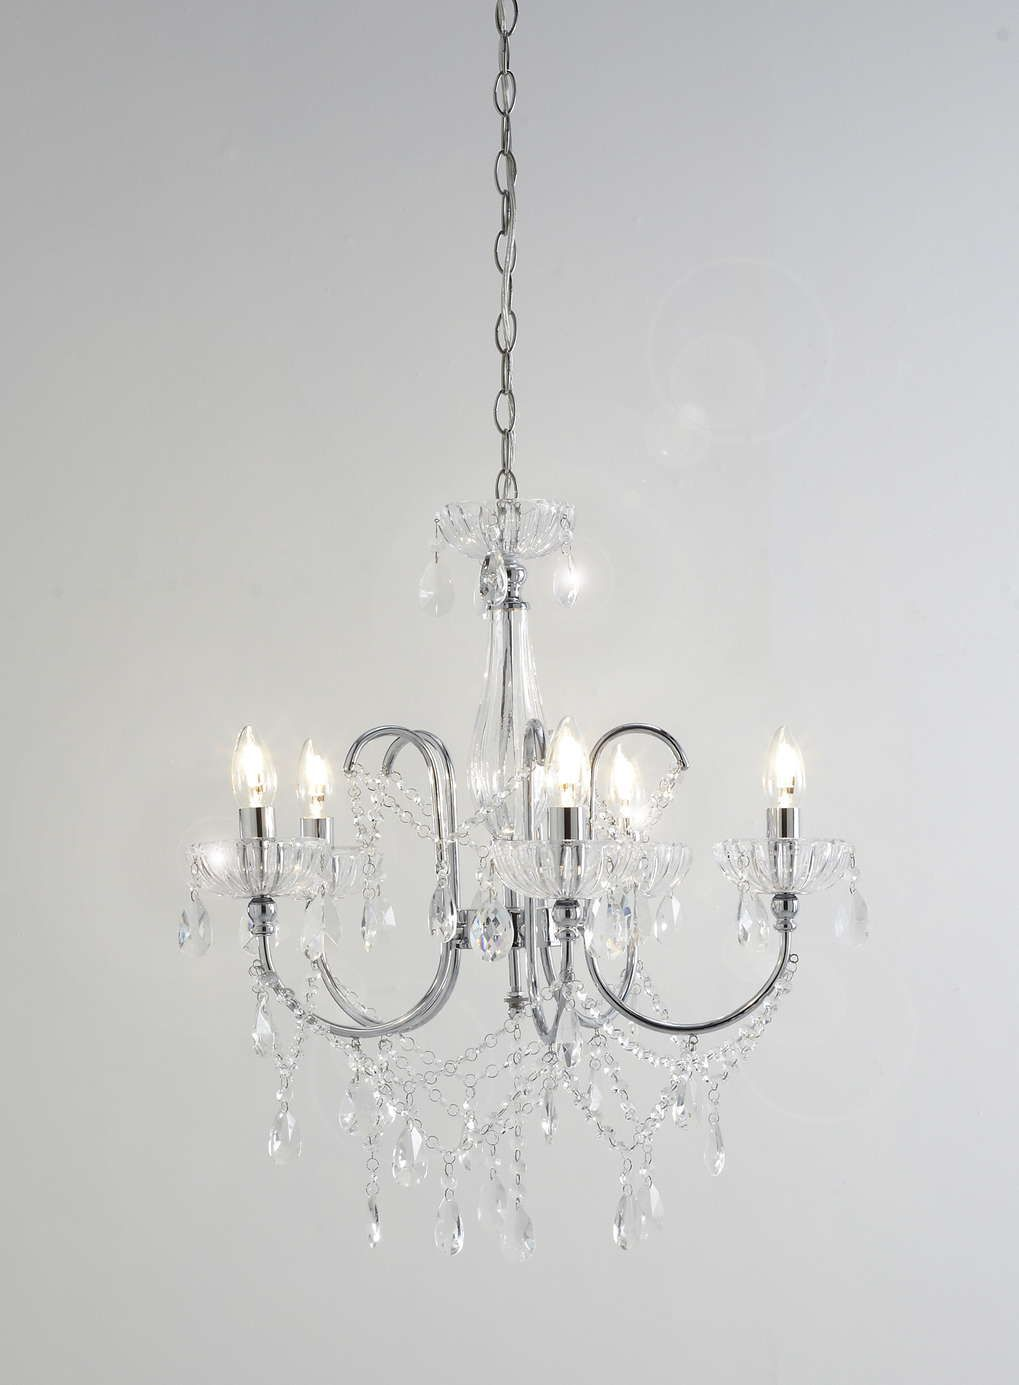 Photo 2 of edith chandelier lighting pinterest bhs master photo 2 of edith chandelier arubaitofo Image collections